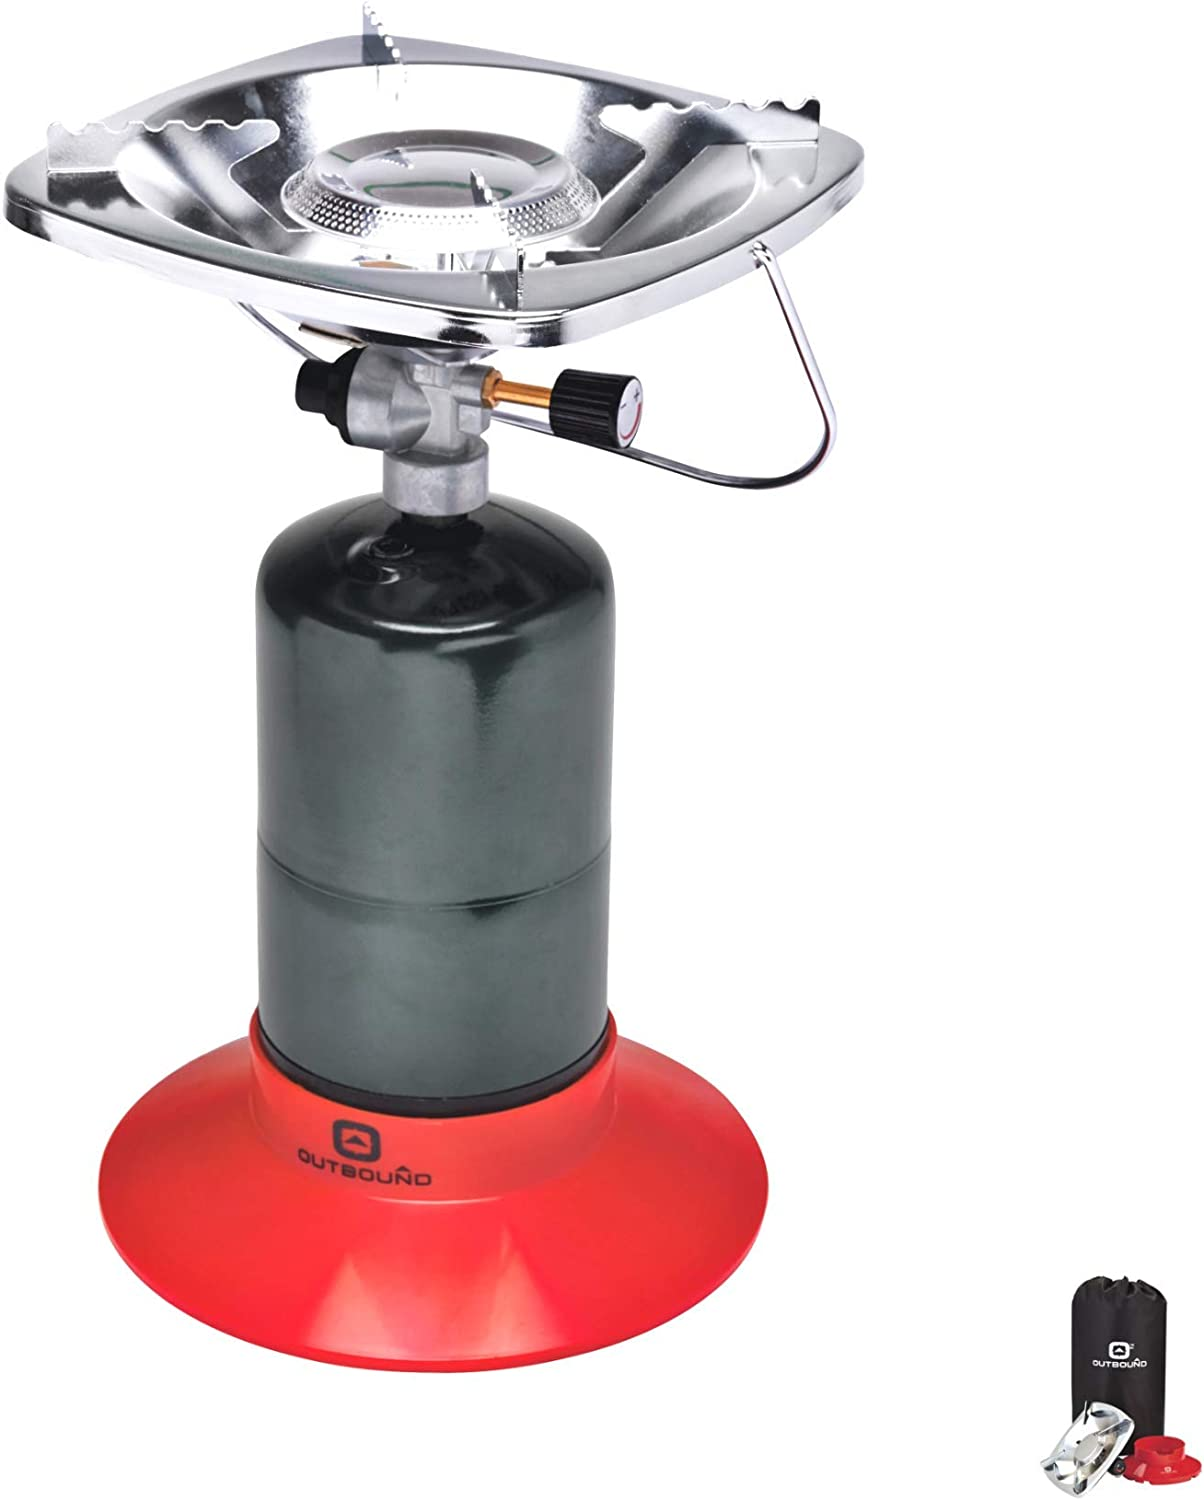 Outbound Propane Stove Portable Gas Stove Single Burner Perfect Bottletop Camp Stove for Backpacking, Camping, Fishing, and Outdoor Cooking